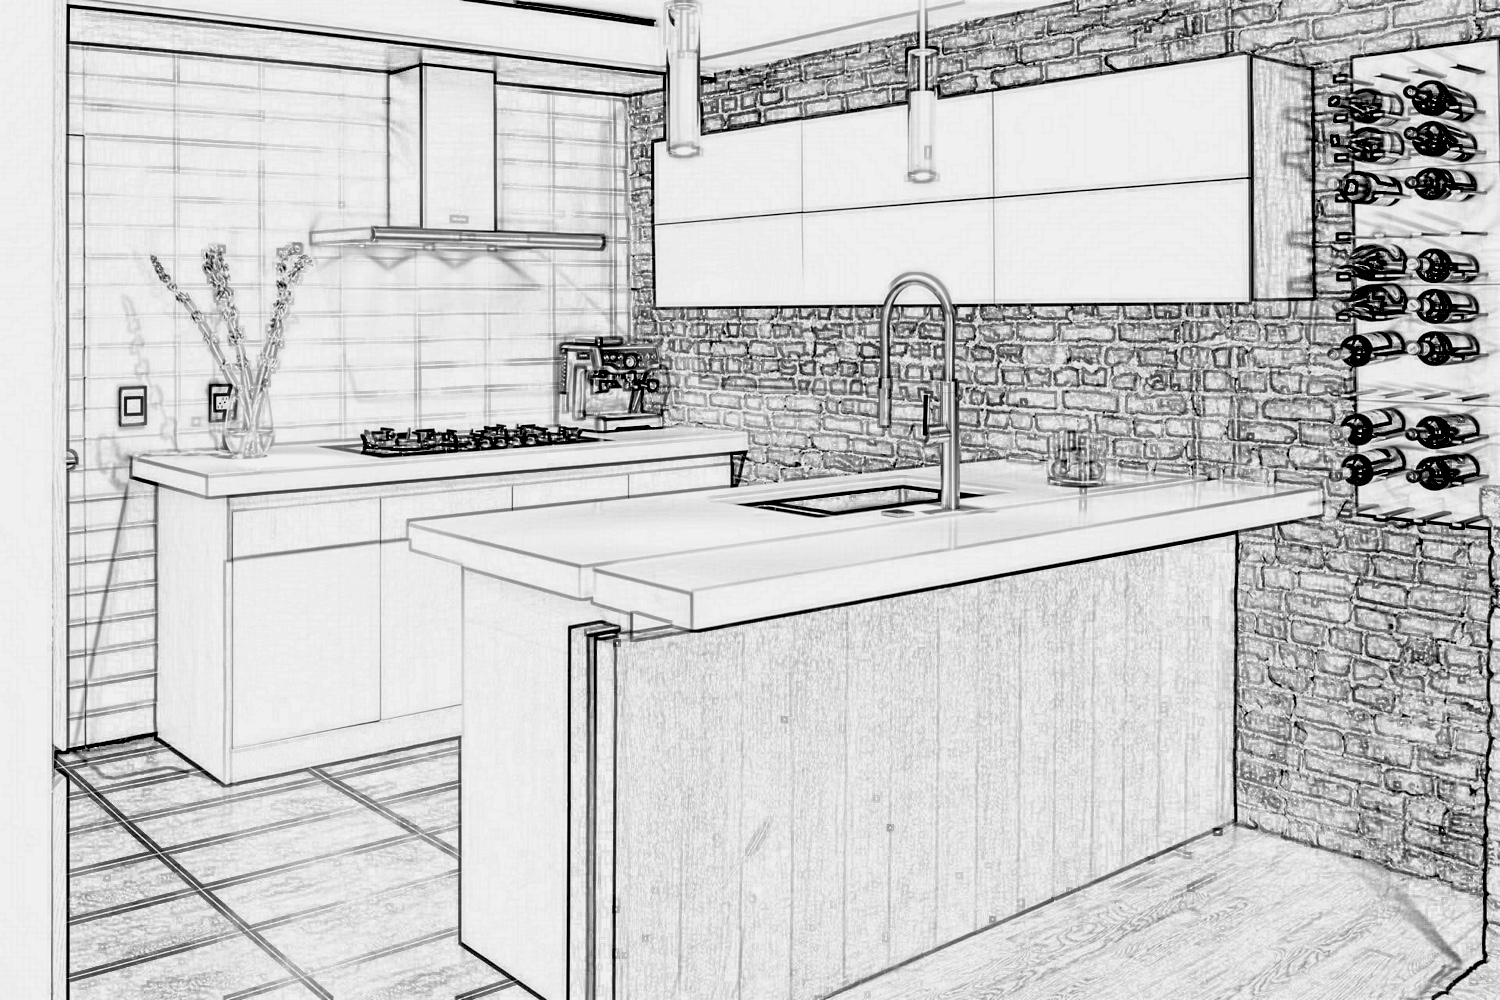 Newton Kitchens & Design - Sketch